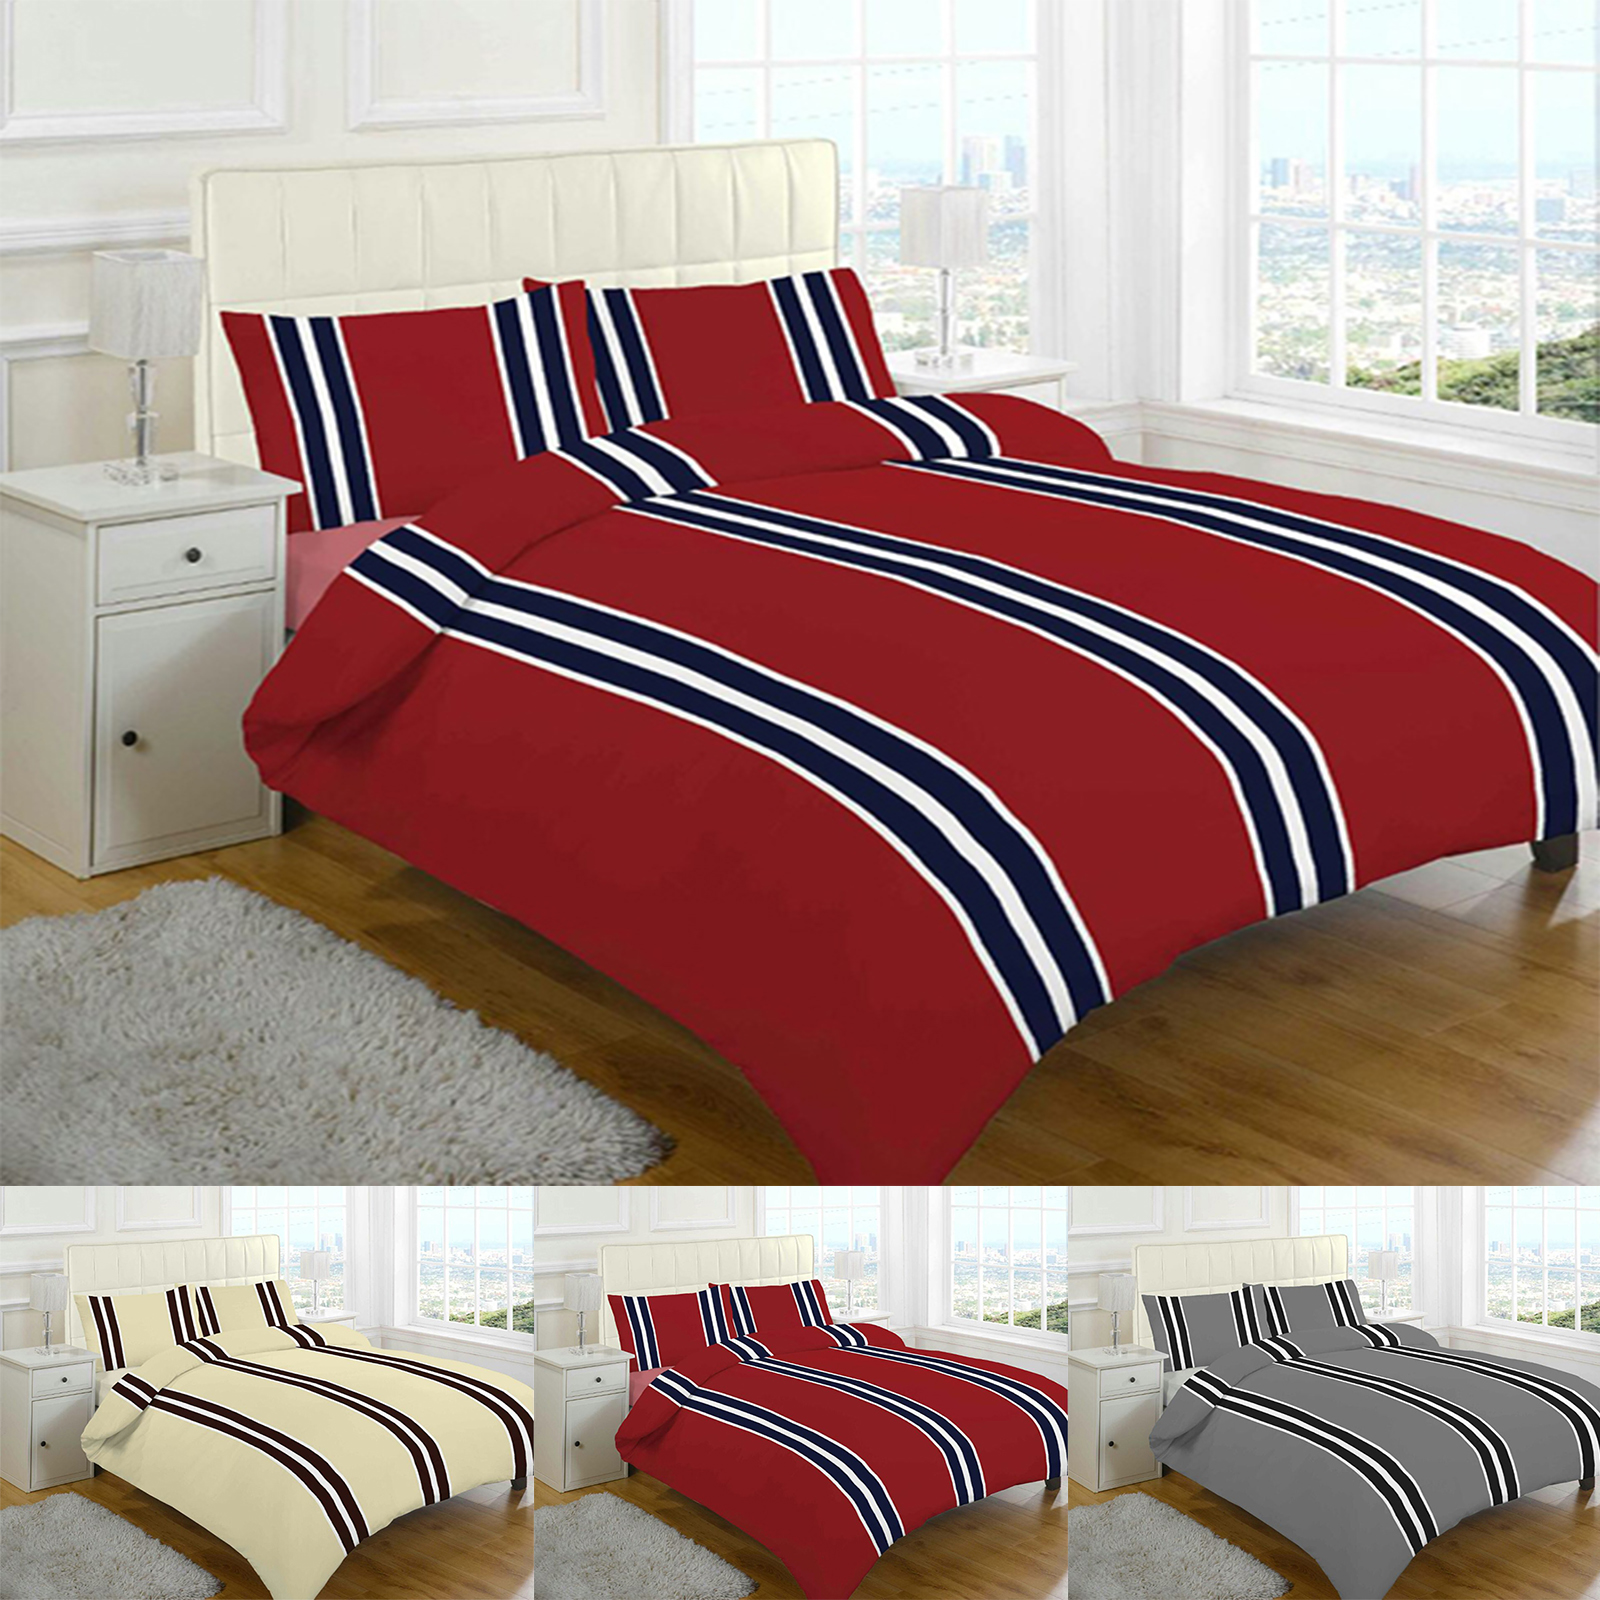 Sala Set Cover Where To Buy Flannel Duvet Set Cover Set Buy Now In The Uk De Lavish